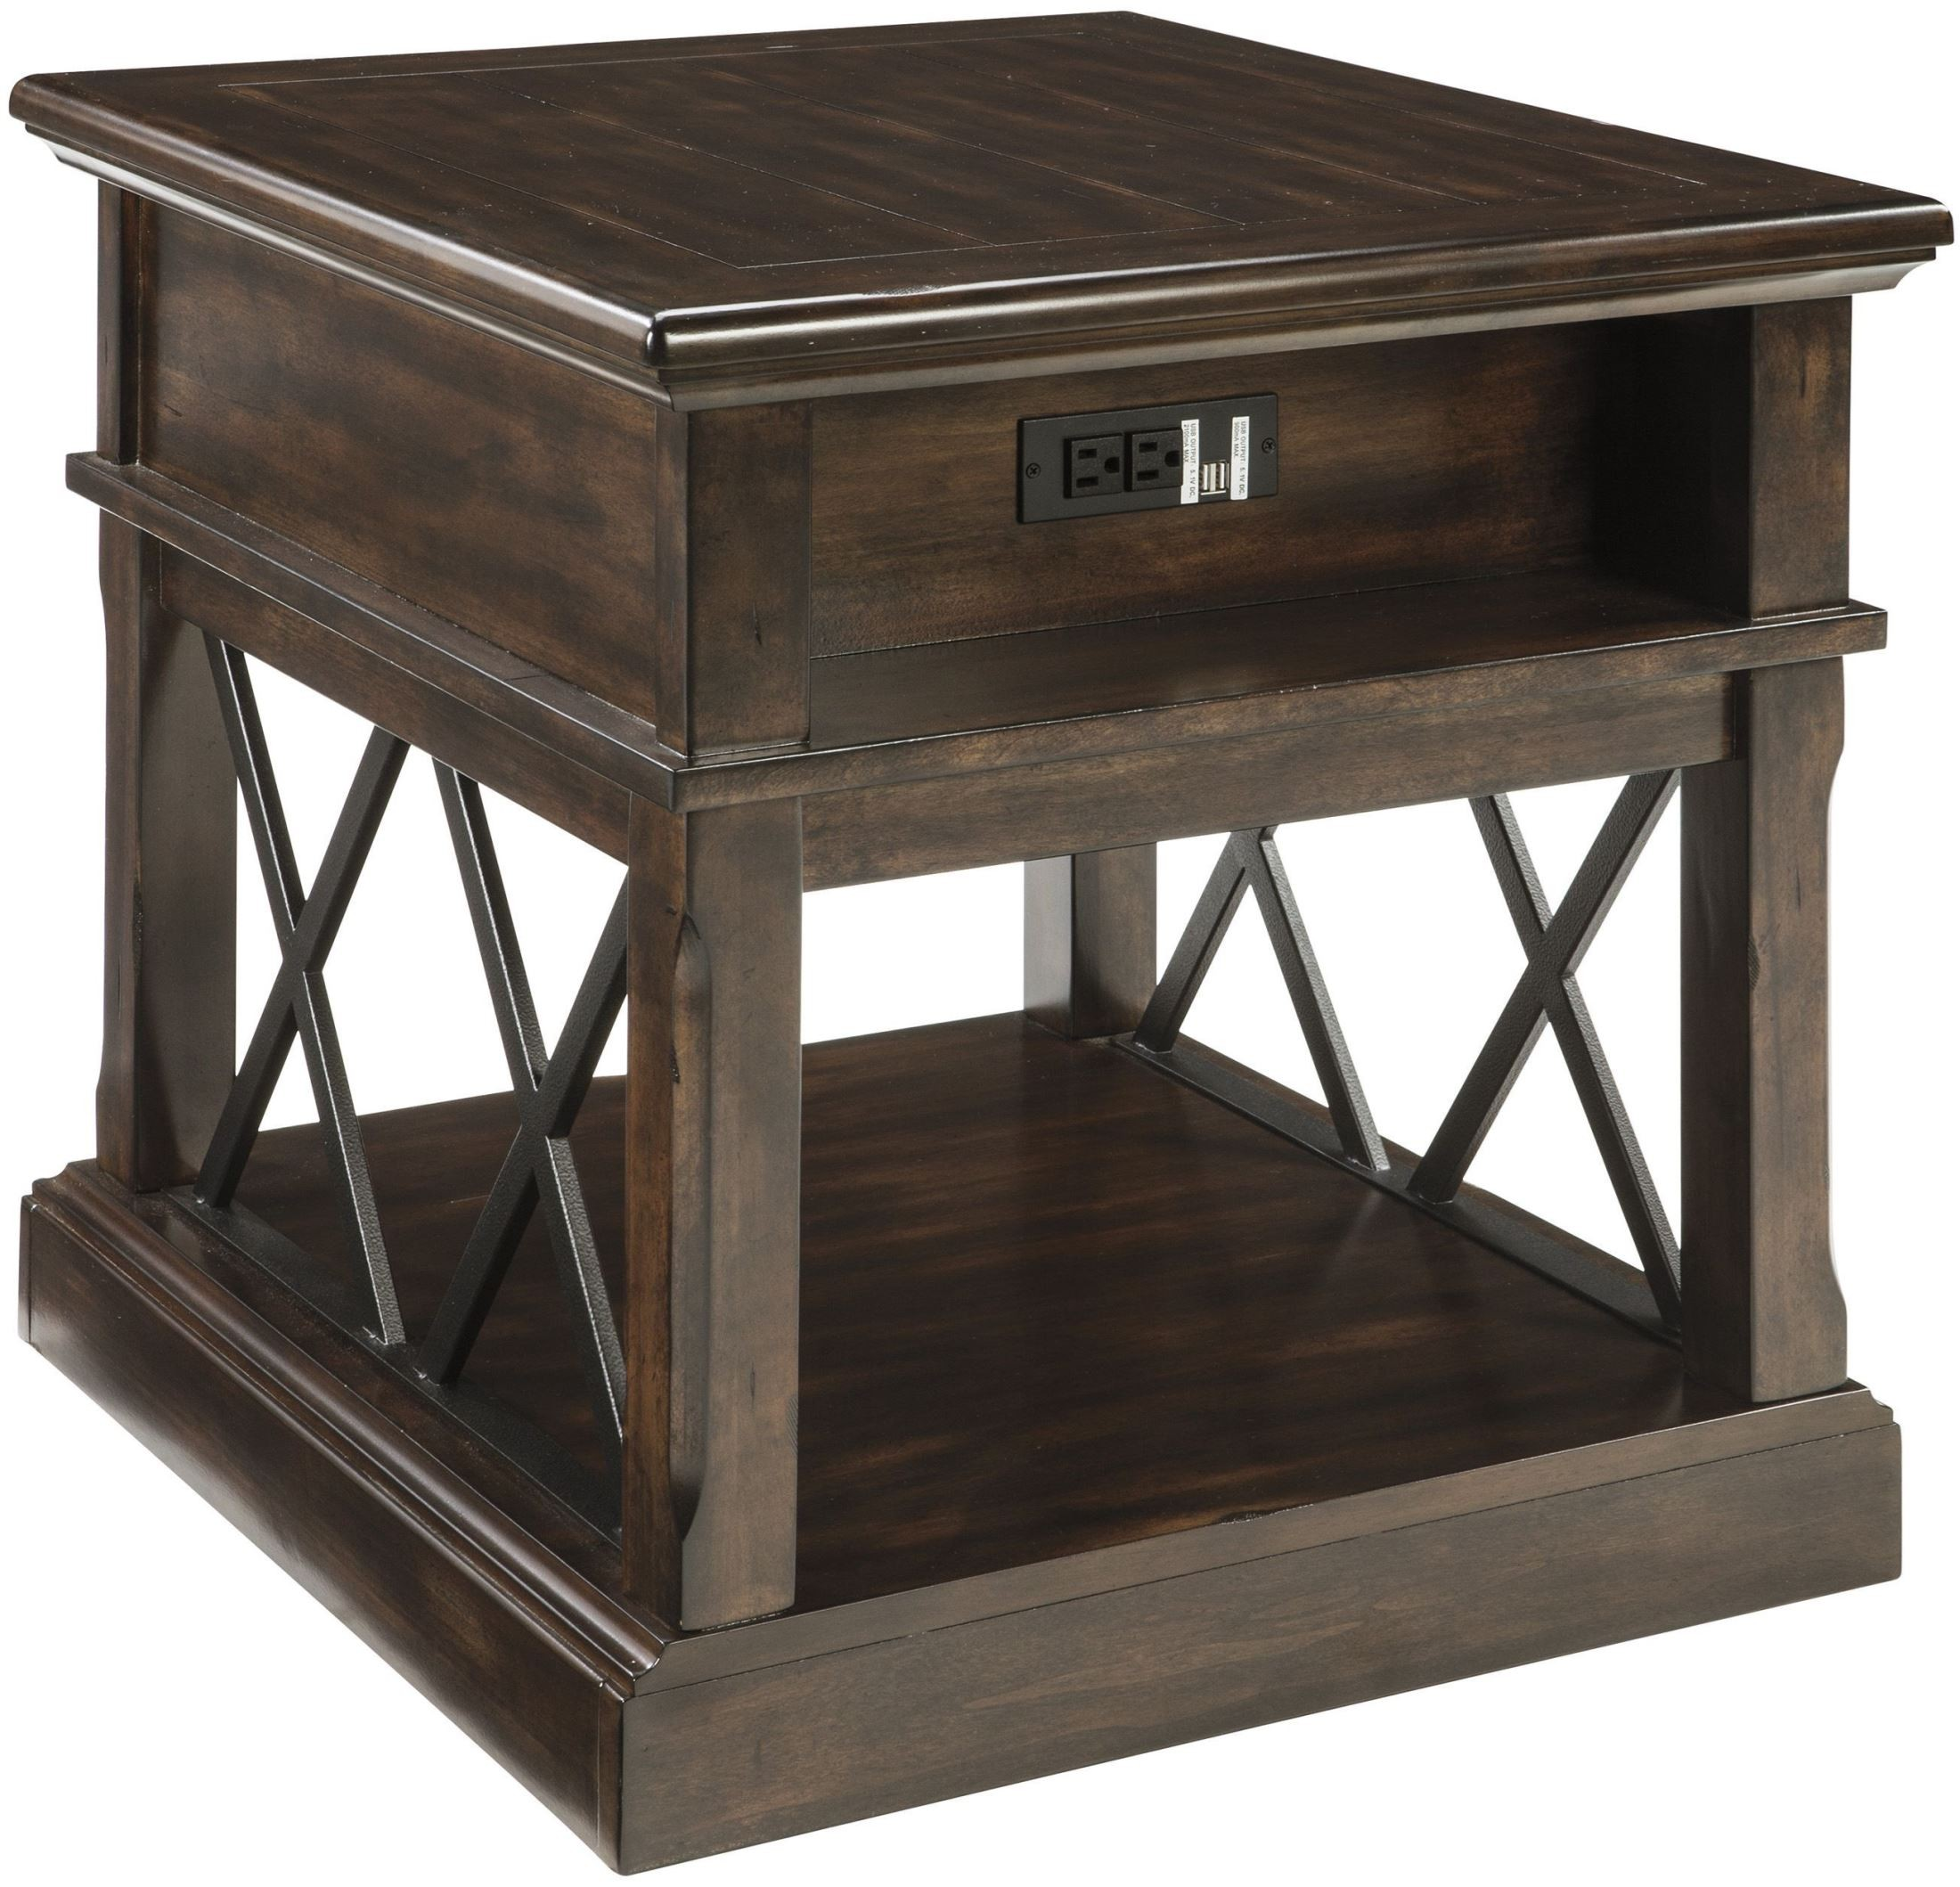 Roddinton Dark Brown Rectangular End Table from Ashley Coleman